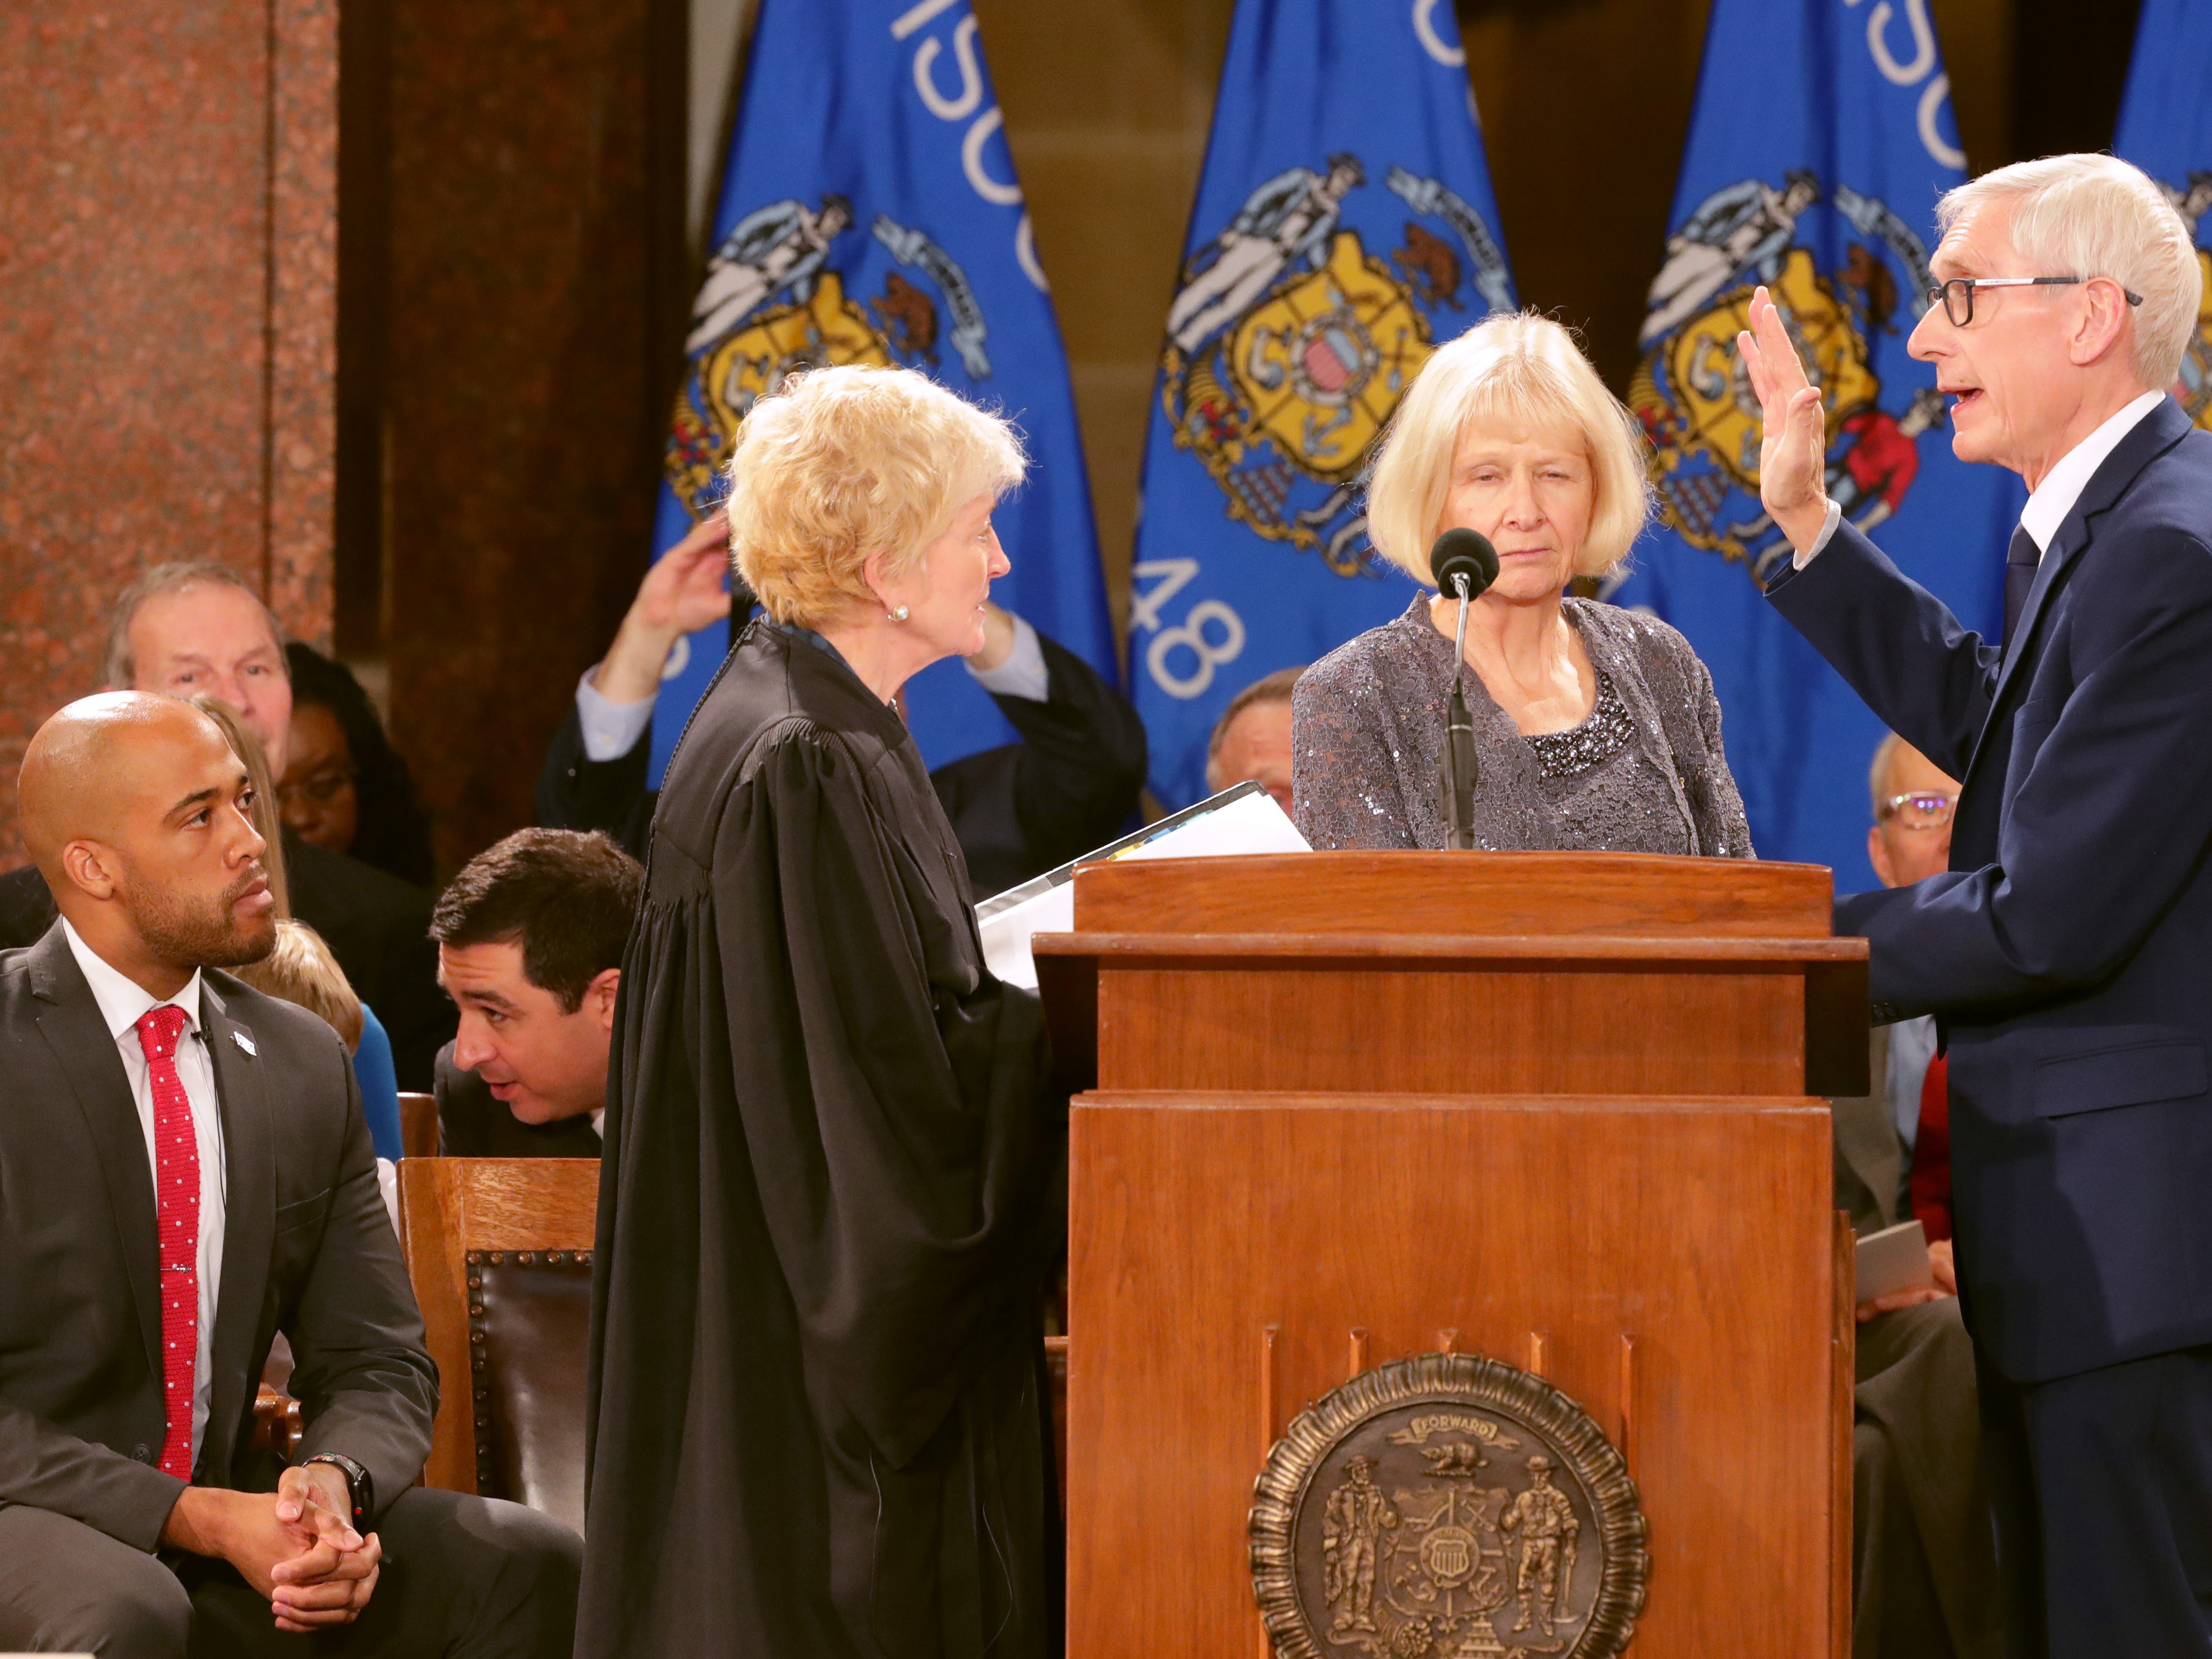 Tony Evers (right) is sworn in as governor by Wisconsin Supreme Court Chief Justice Patience D. Roggensack during the inauguration for the state's constitutional officers at the Capitol in Madison, Wis. Looking on is Evers' wife, Kathy (center), and Lt. Gov. Mandela Barnes (left).